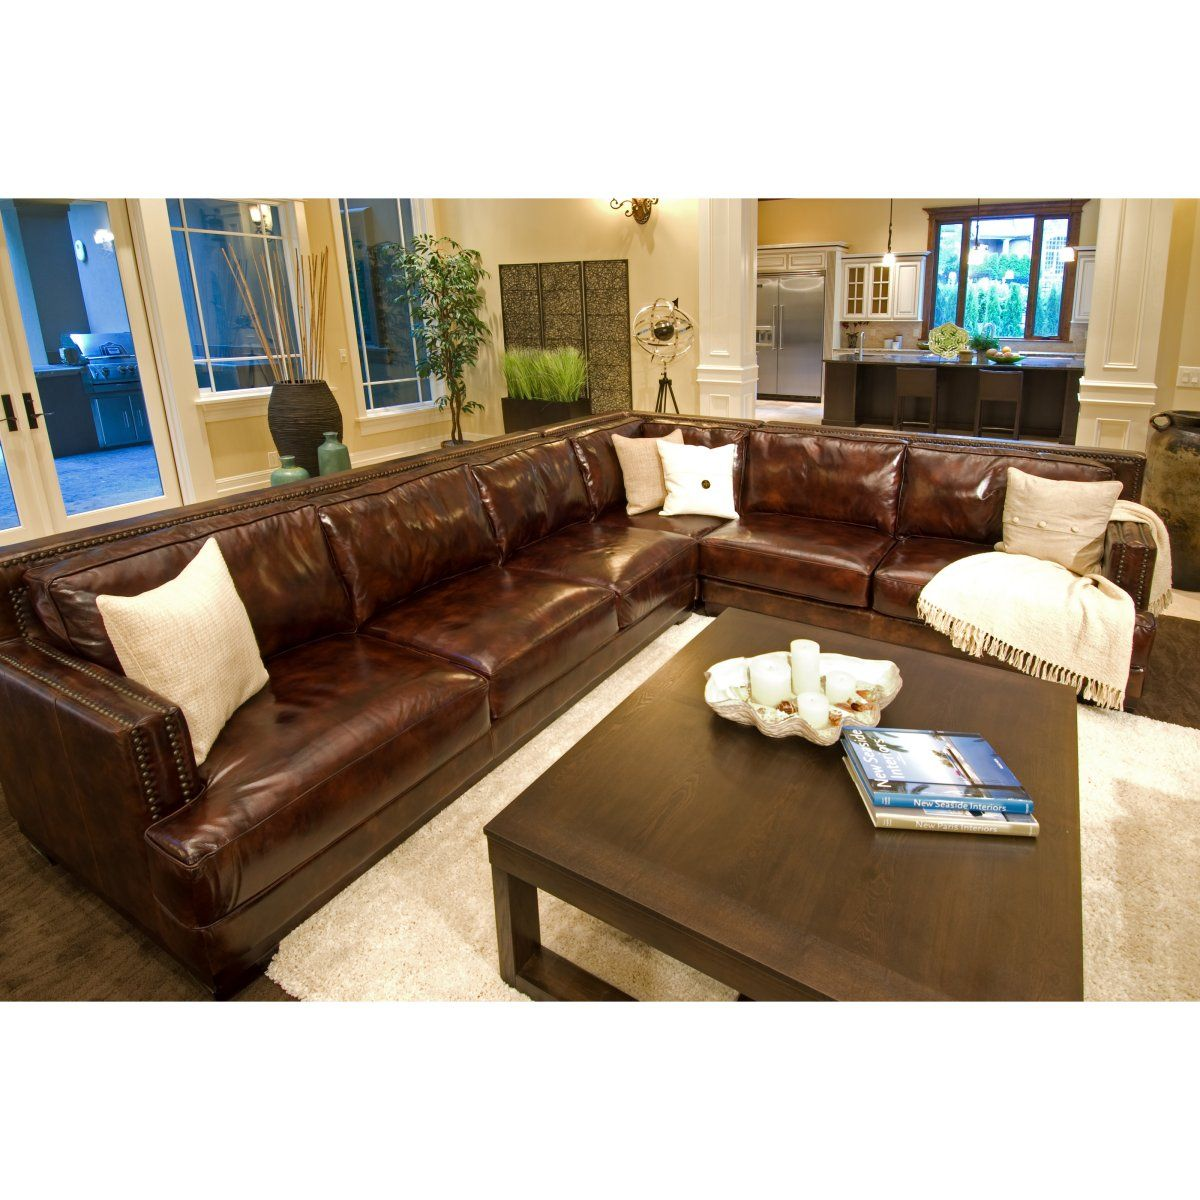 Easton top grain leather sectional left arm facing sofa for Easton leather sectional sofa